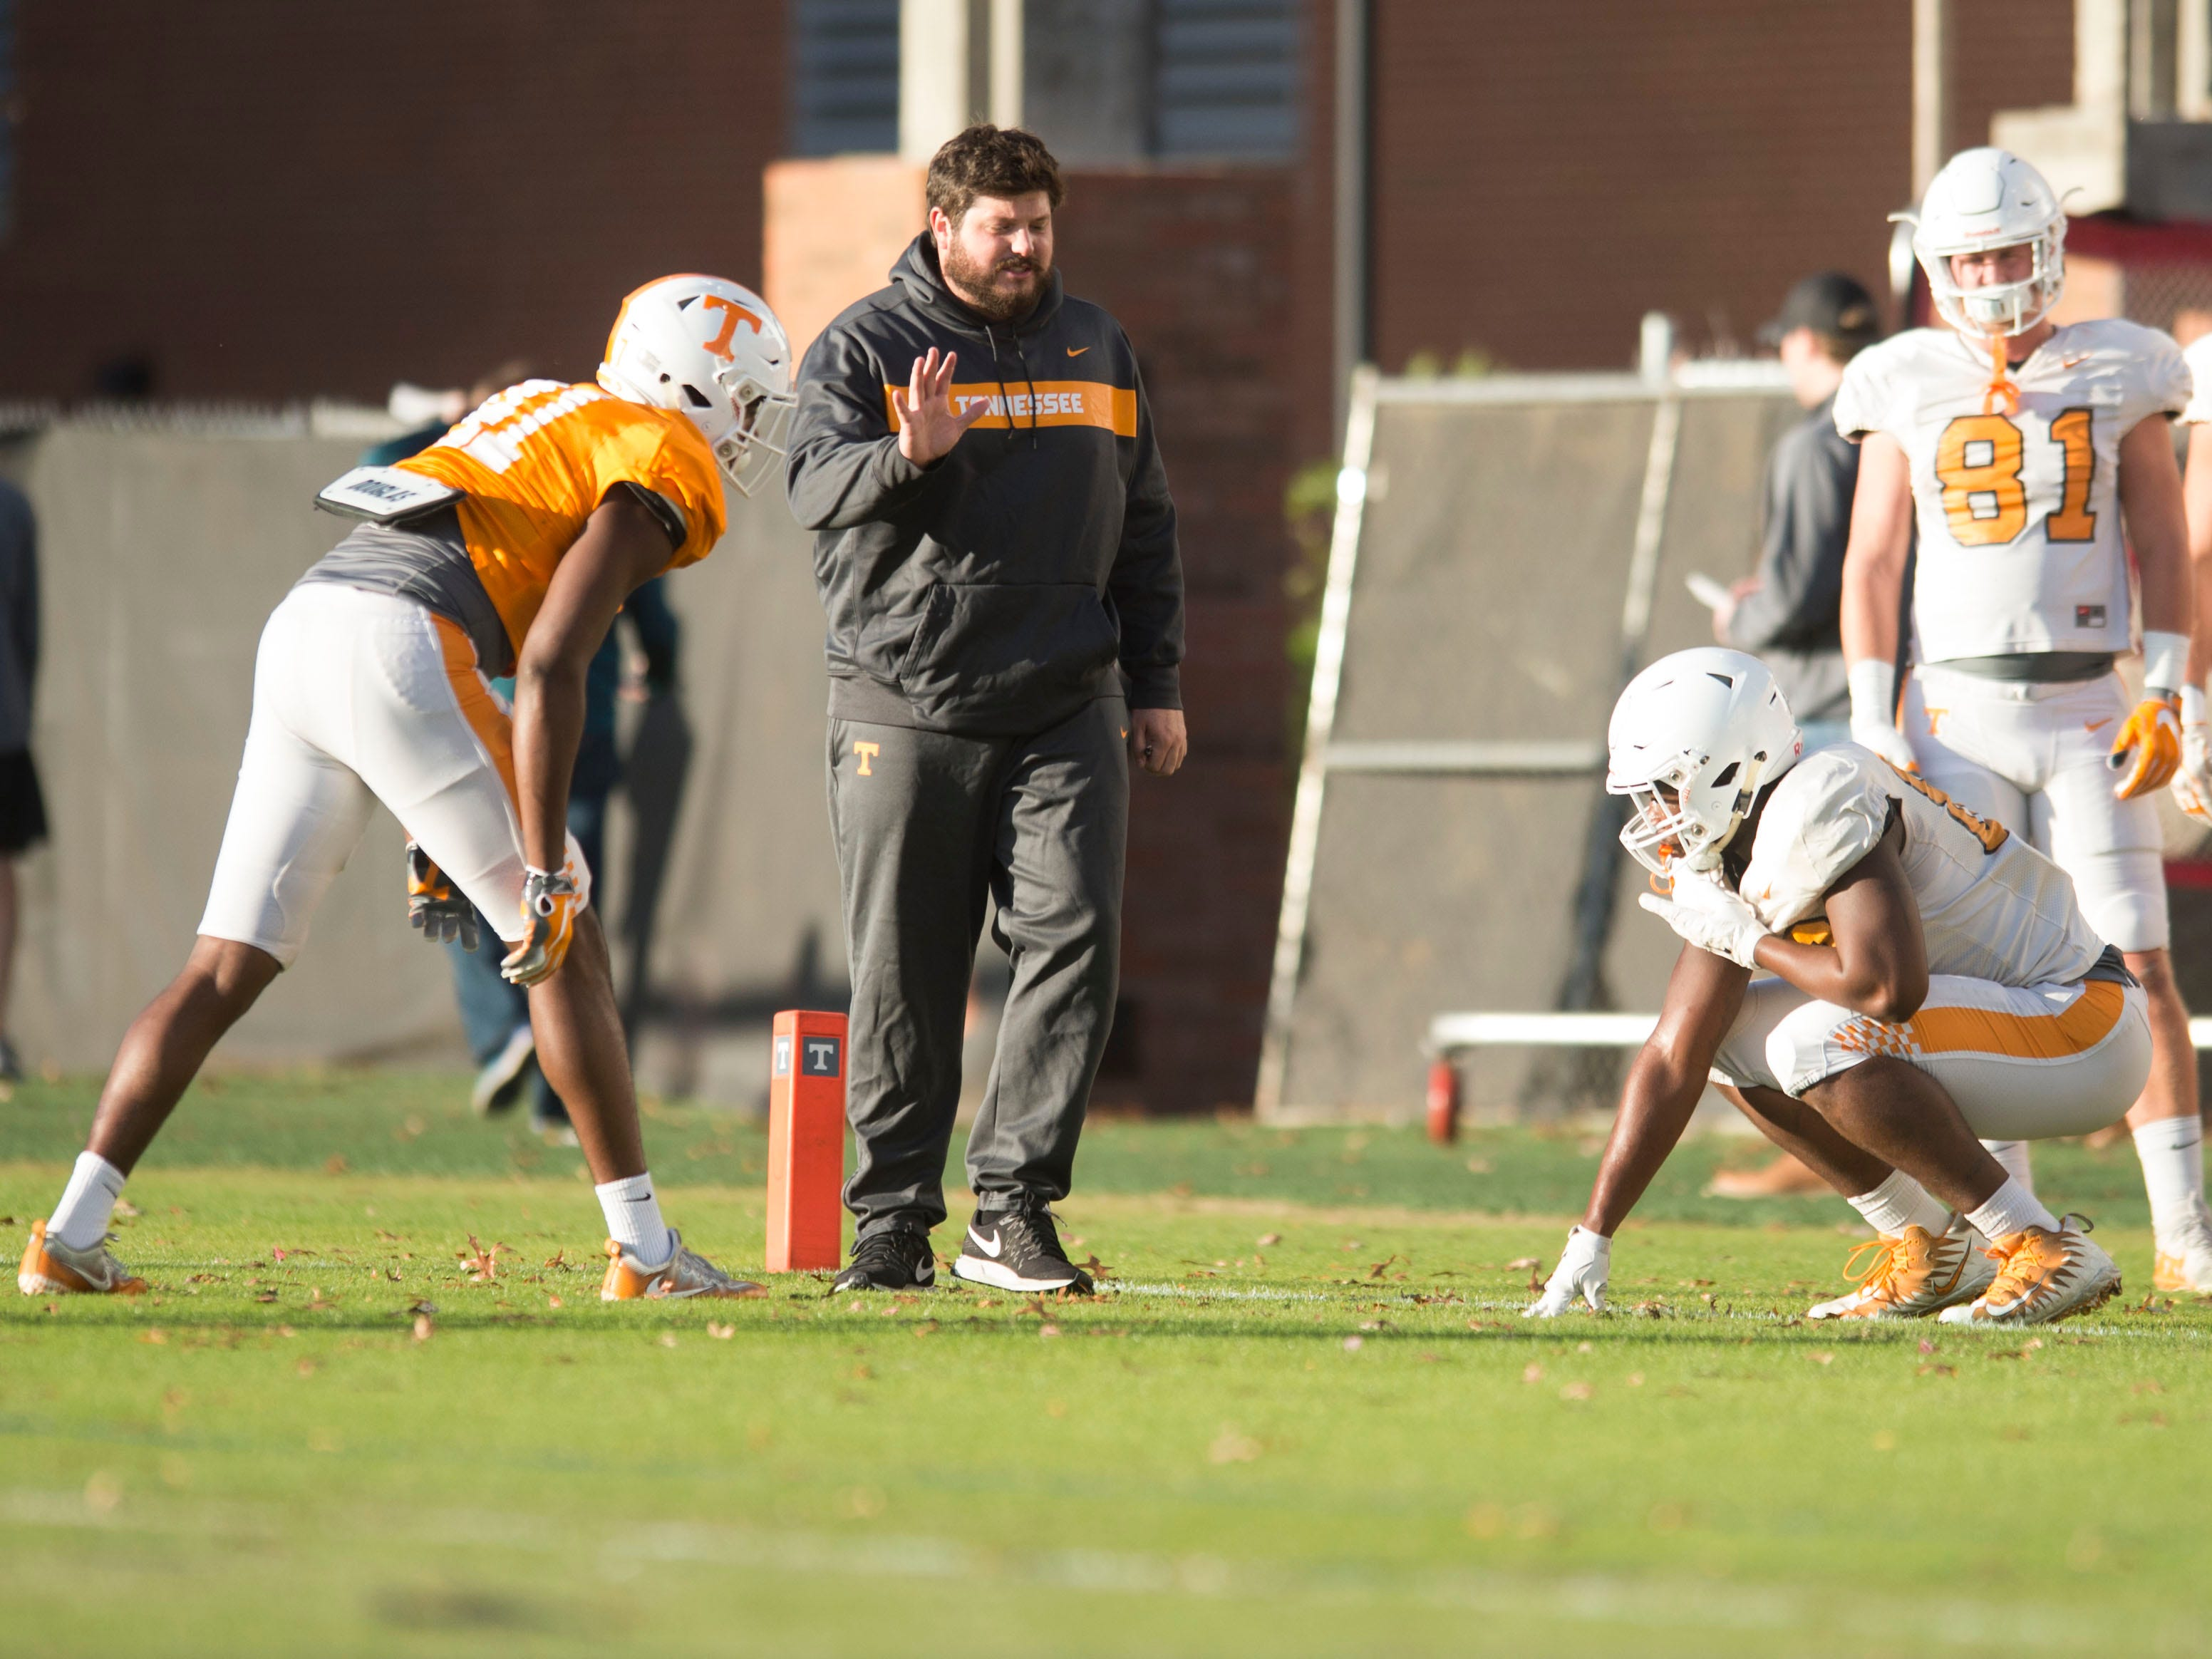 Tennessee Tight Ends Coach Brian Niedermeyer during football practice on Tuesday, November 6, 2018.